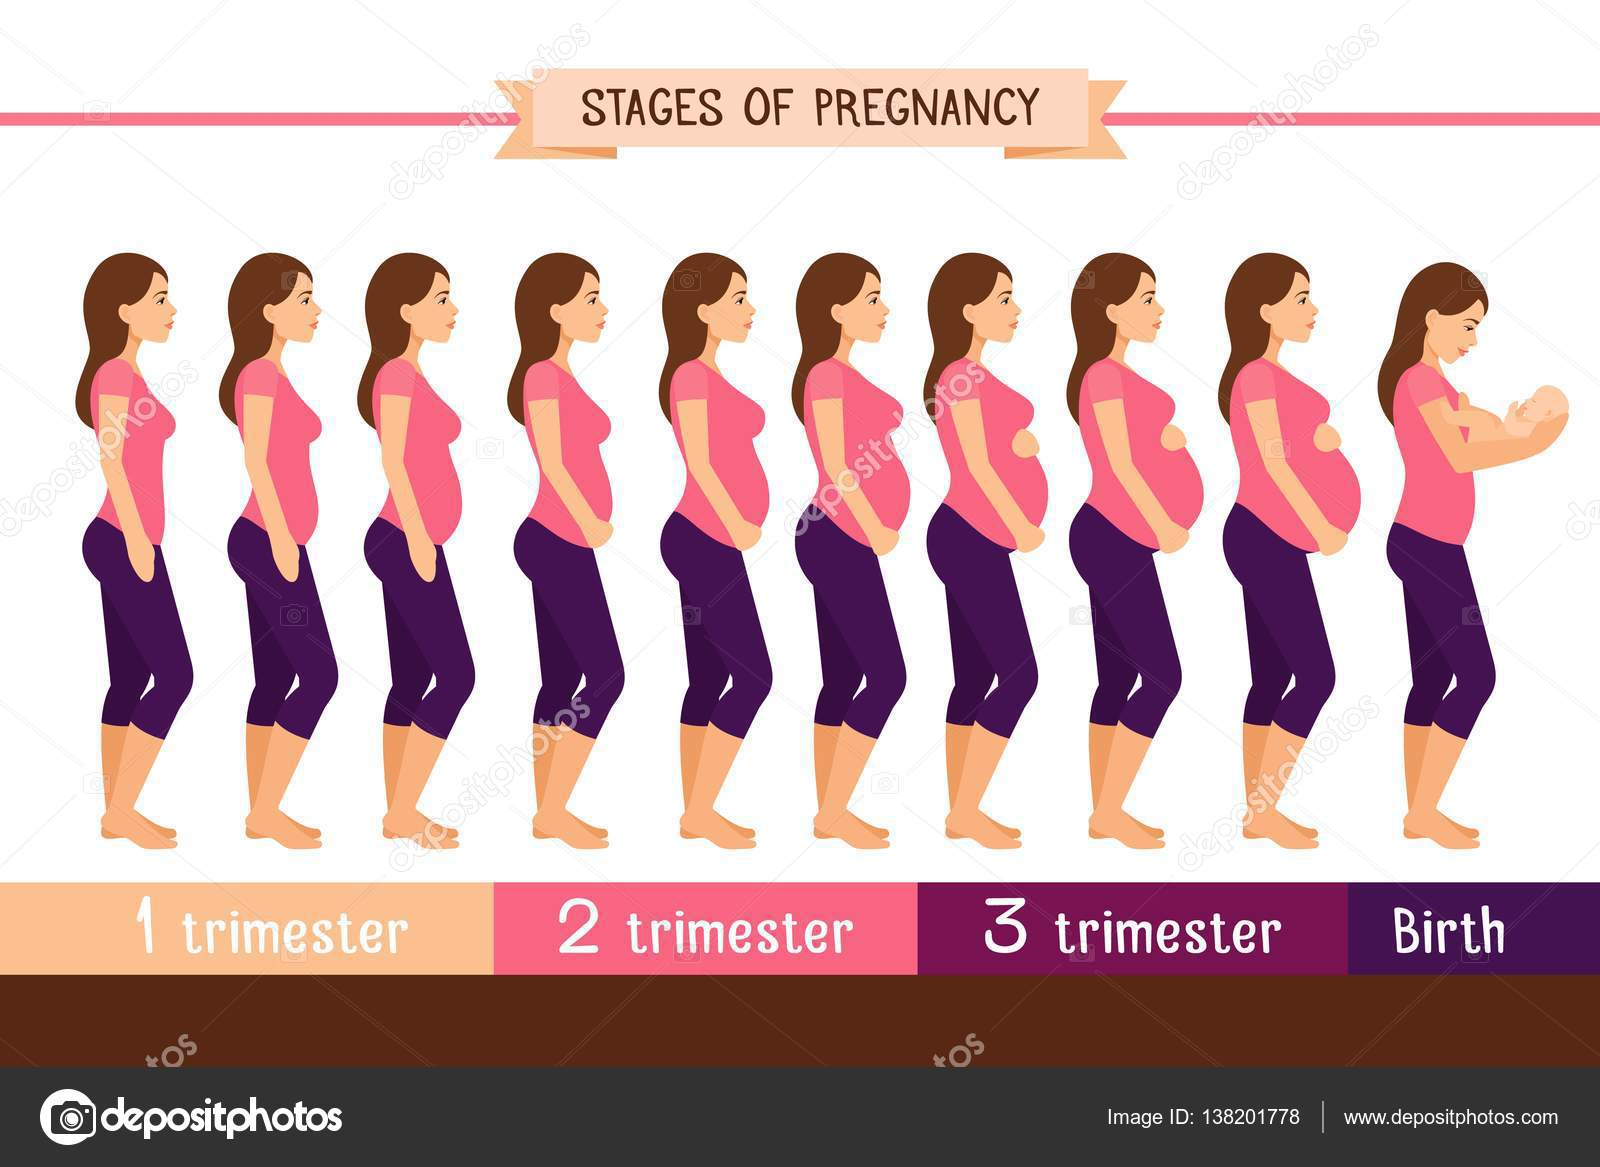 How do pictures on the abdomen of pregnant women